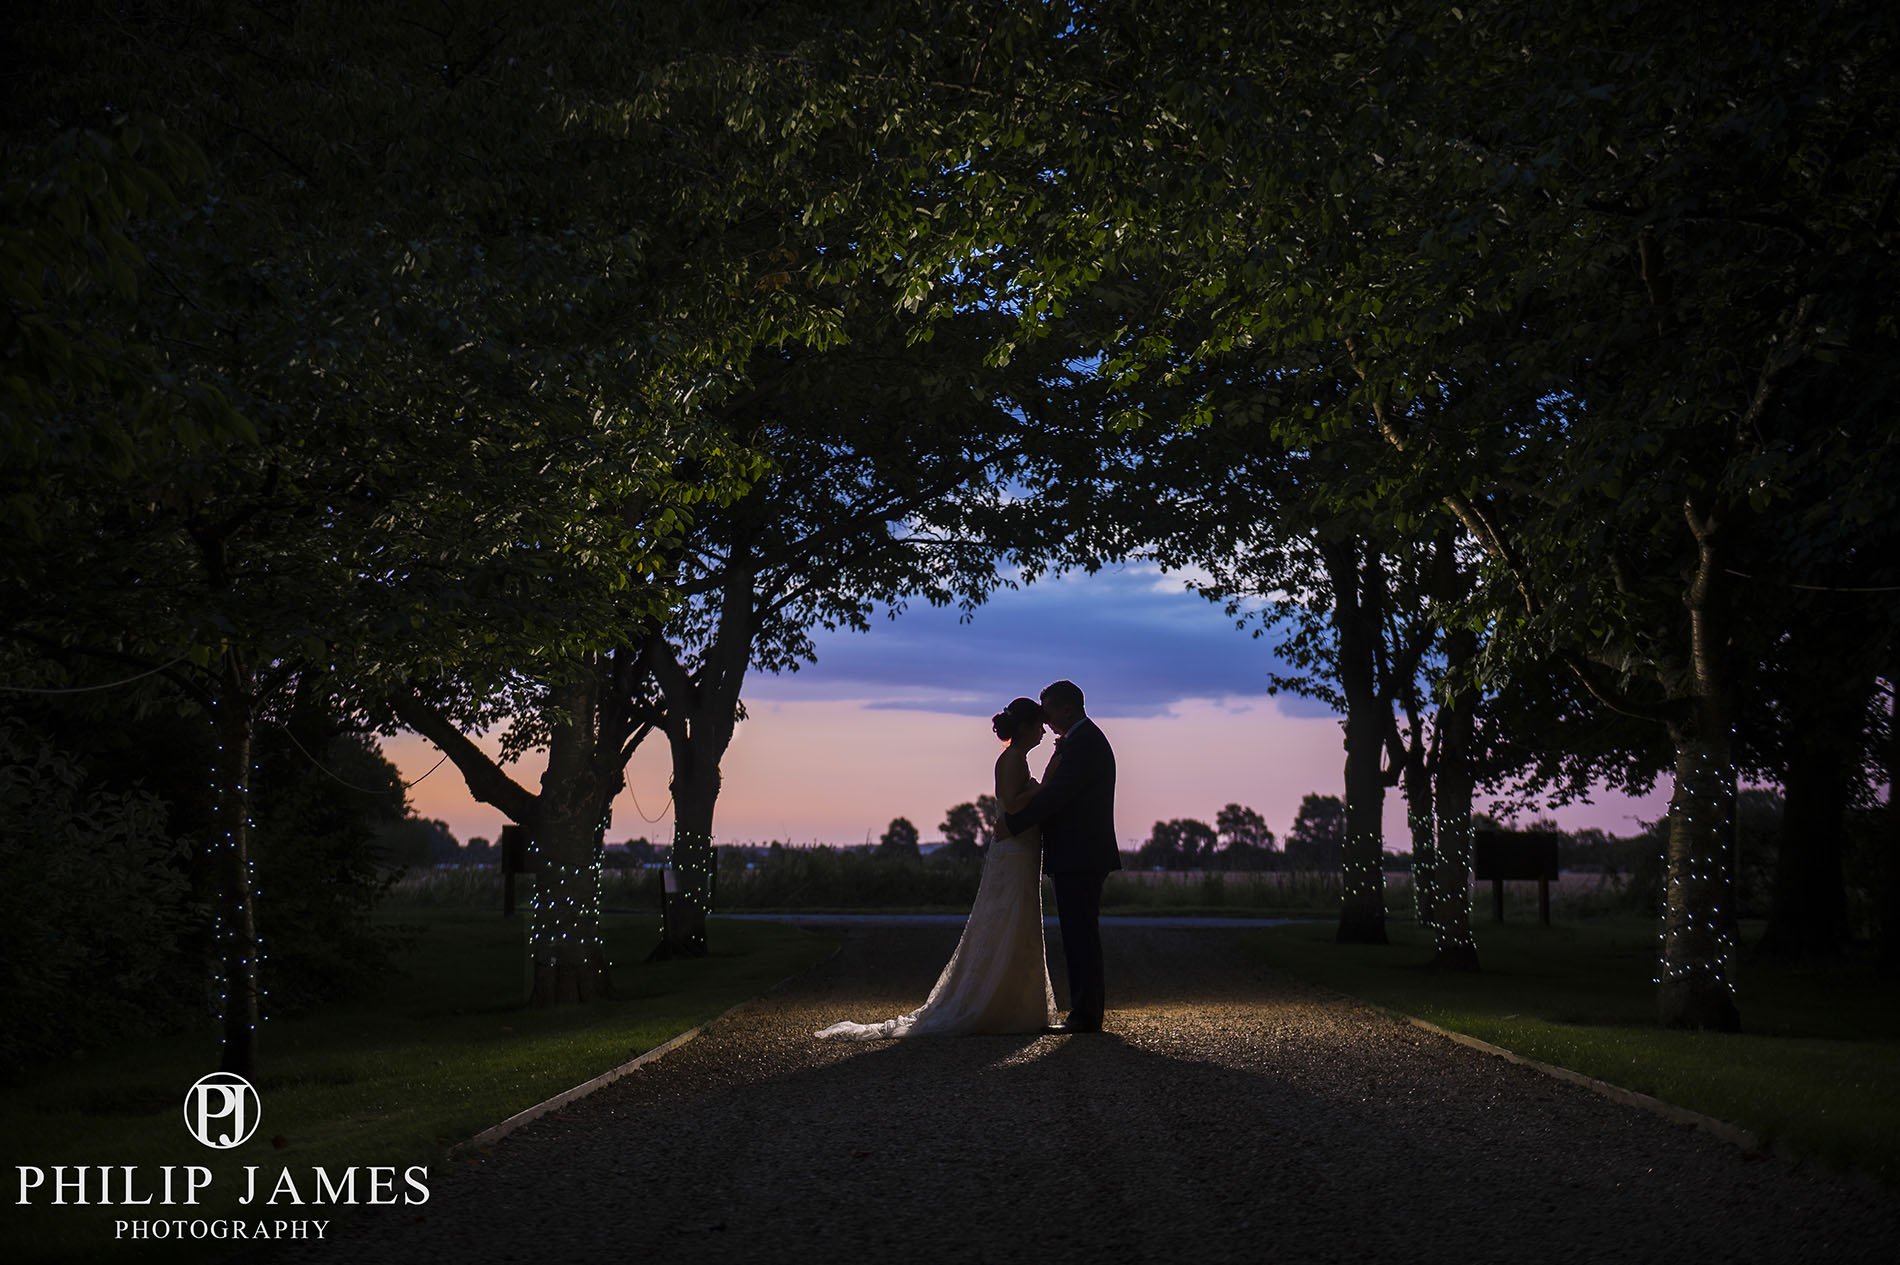 Philip James specializing in Wedding Photography Birmingham - Moments (167 of 170)